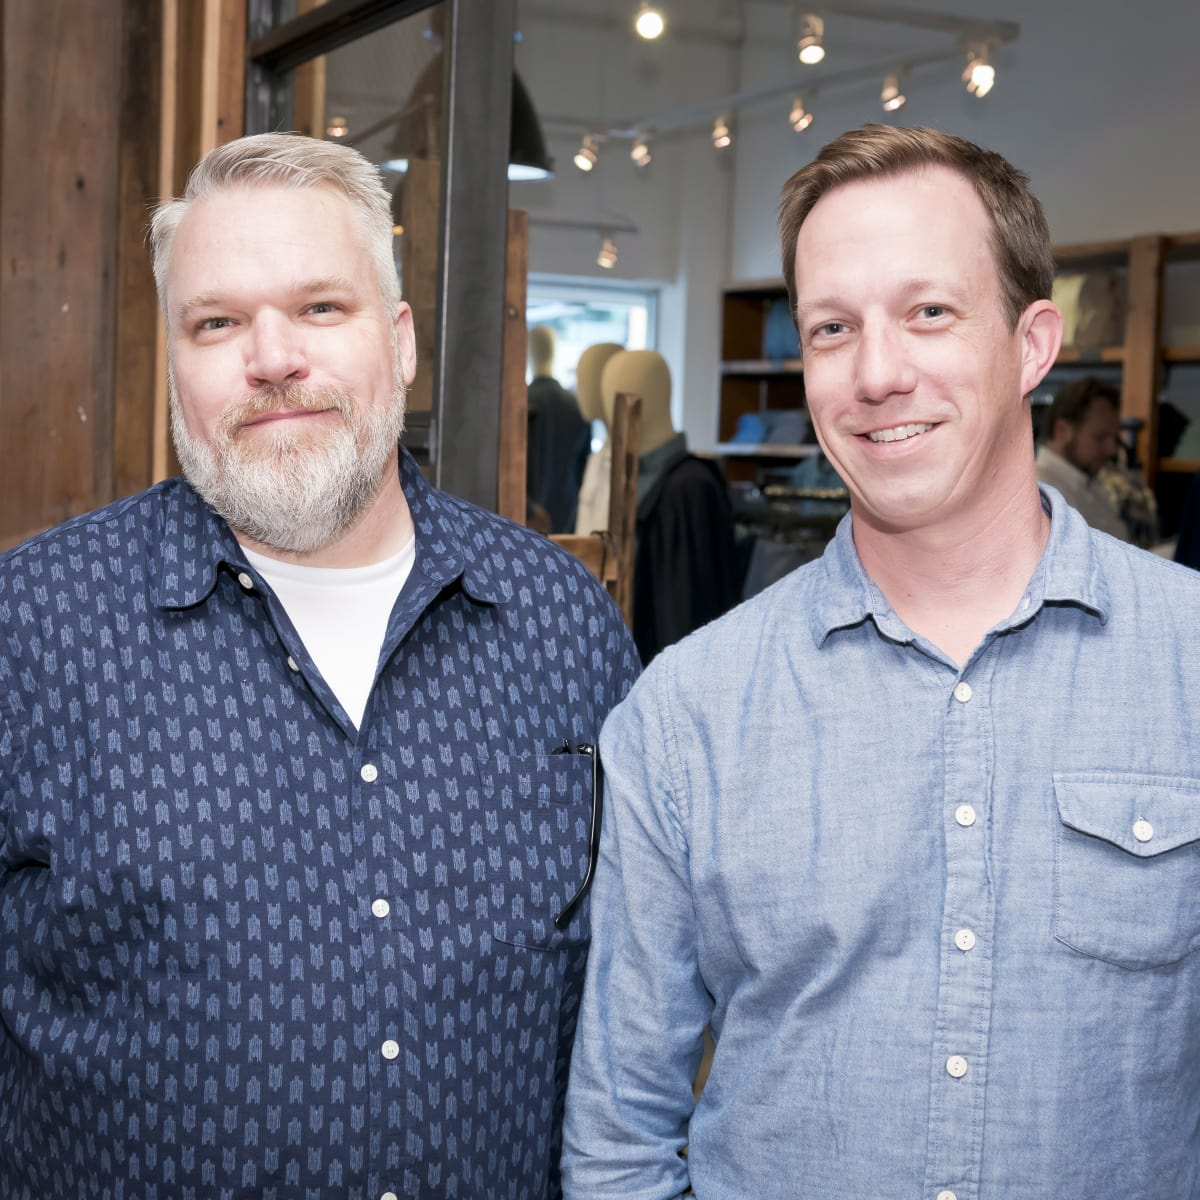 Houston, Stag Provisions opening party, June 2015, Steve Shuck, Don Weir